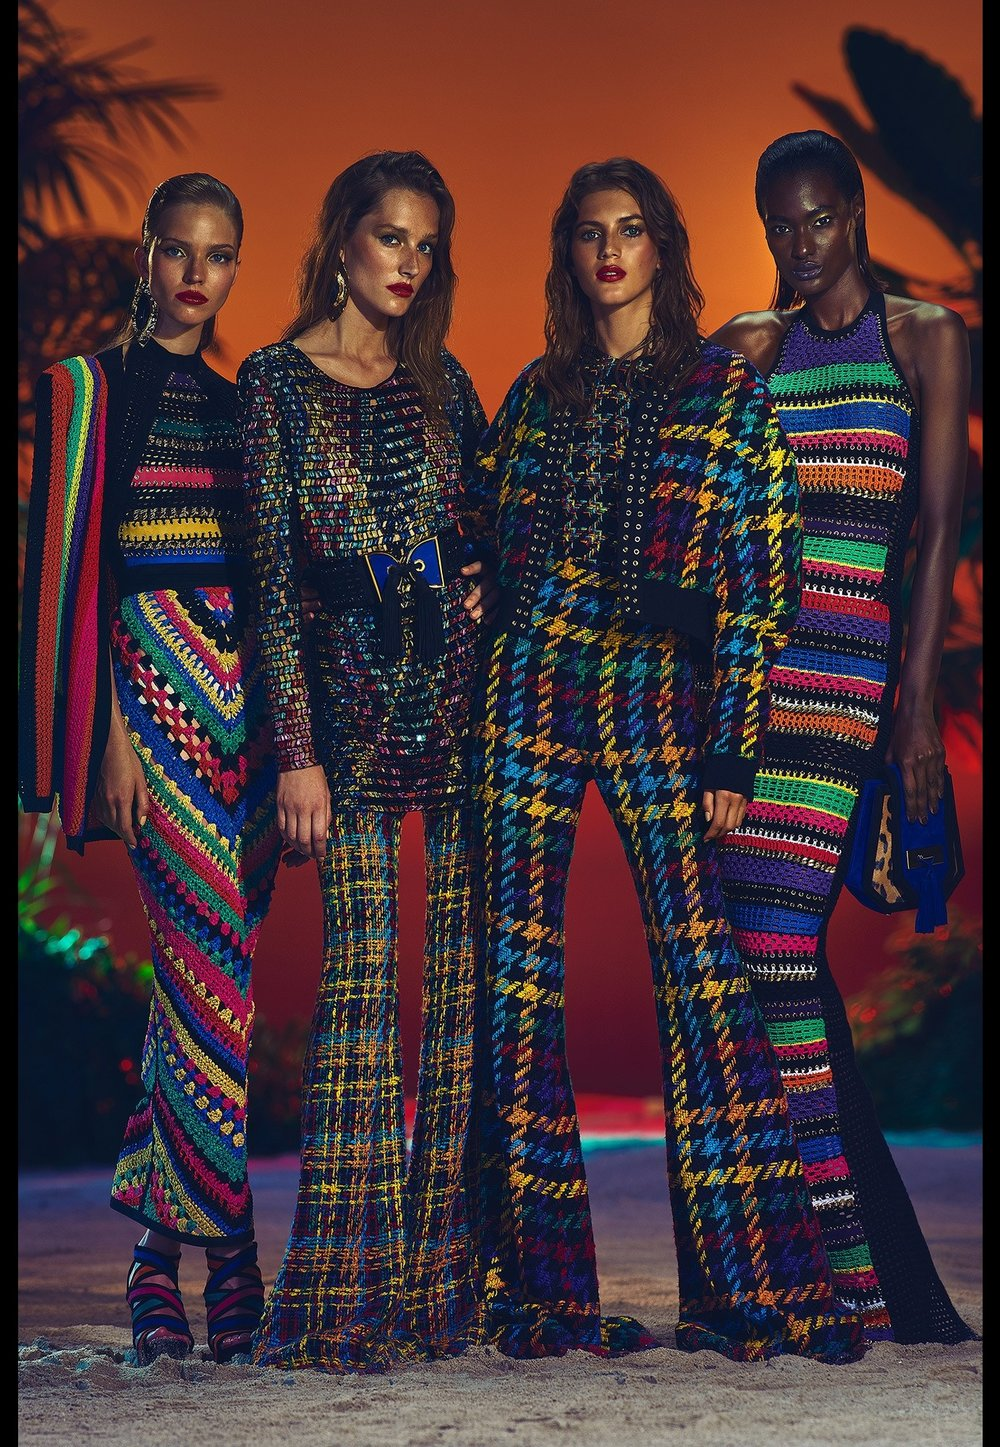 13_balmain_2017_jpg_8536_north_1382x_black.jpg